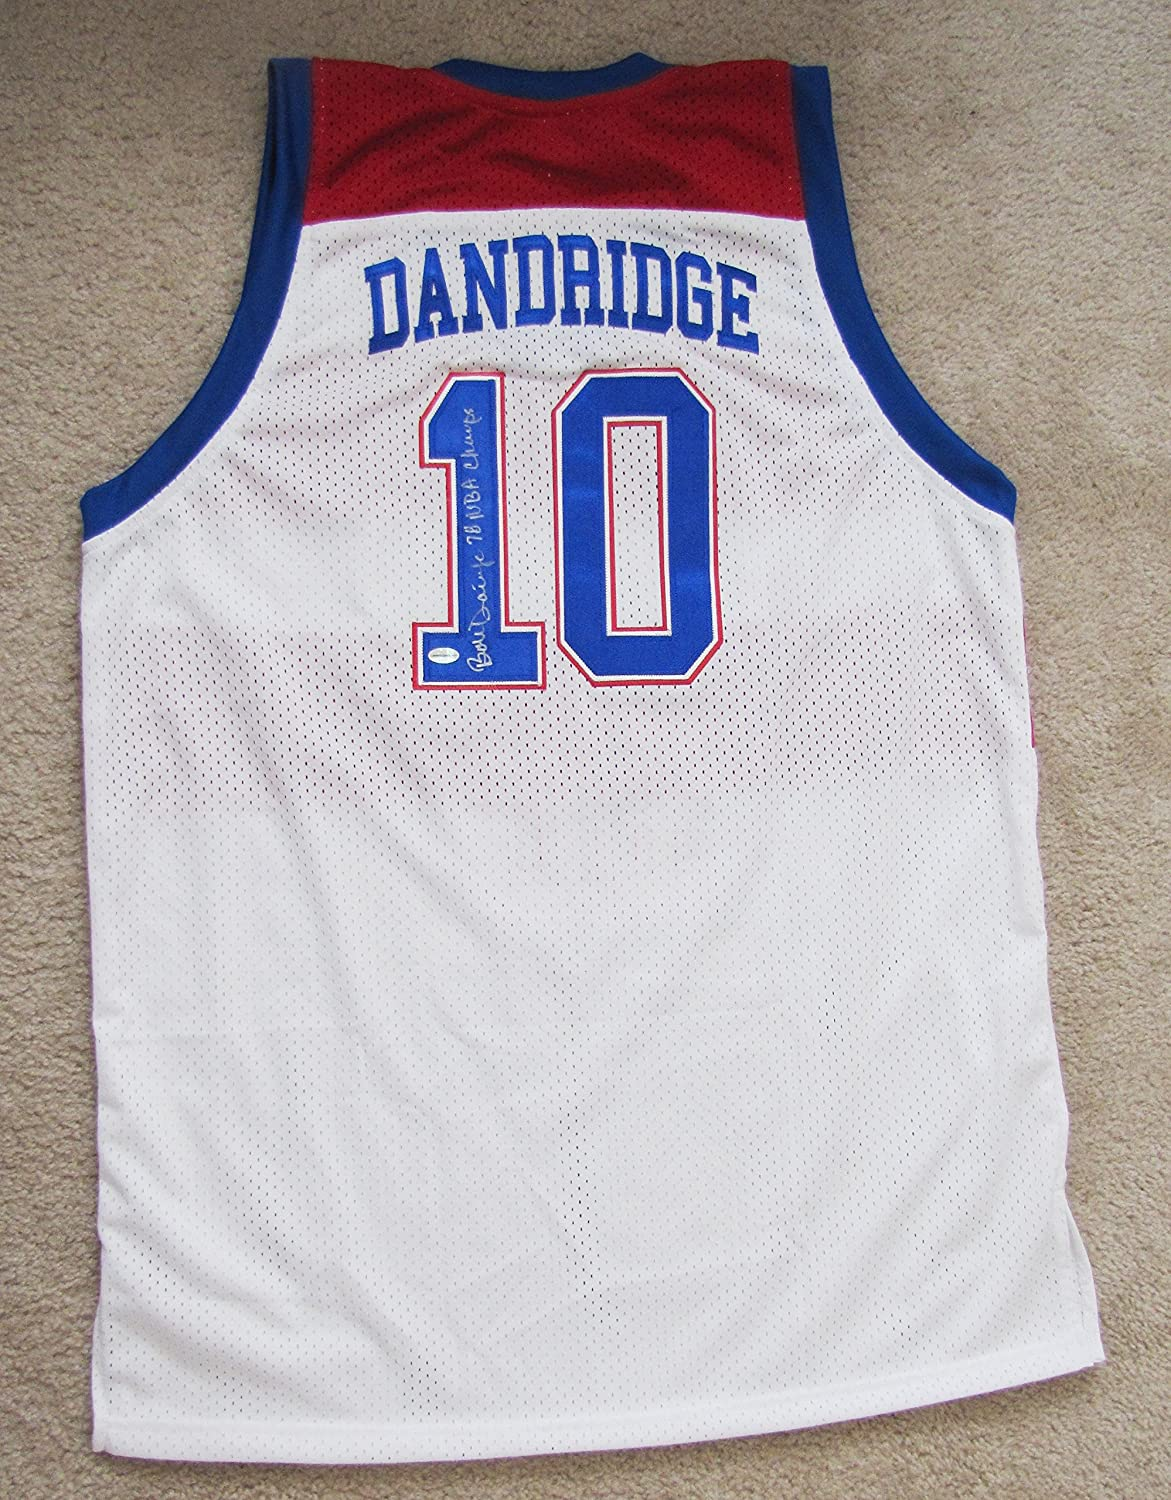 lowest price 861d5 74bf6 Bob Dandridge Autographed White Jersey - Washington Bullets ...